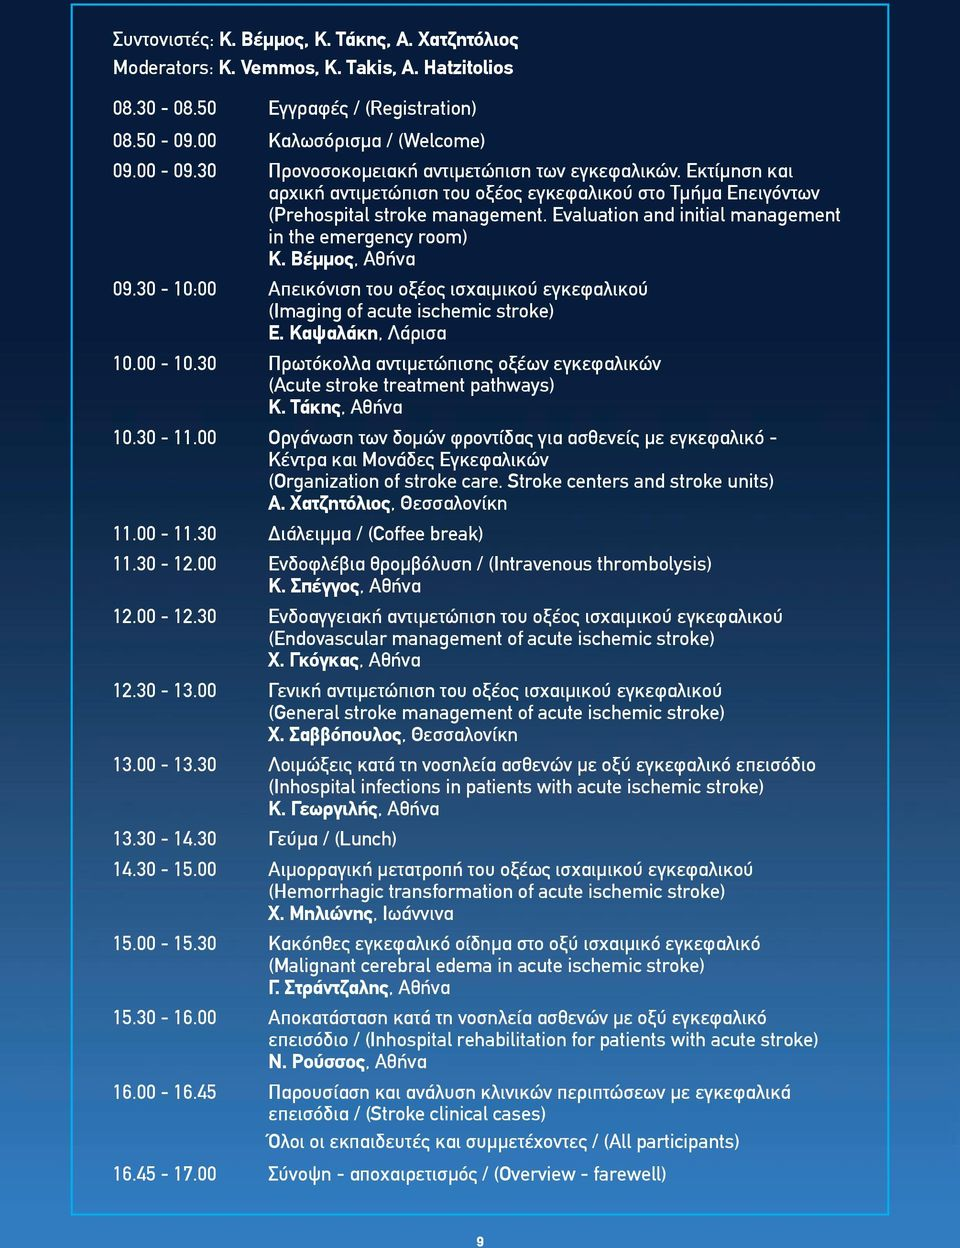 Evaluation and initial management in the emergency room) Κ. Βέμμος, Αθήνα 09.30-10:00 Απεικόνιση του οξέος ισχαιμικού εγκεφαλικού (Imaging of acute ischemic stroke) Ε. Καψαλάκη, Λάρισα 10.00-10.